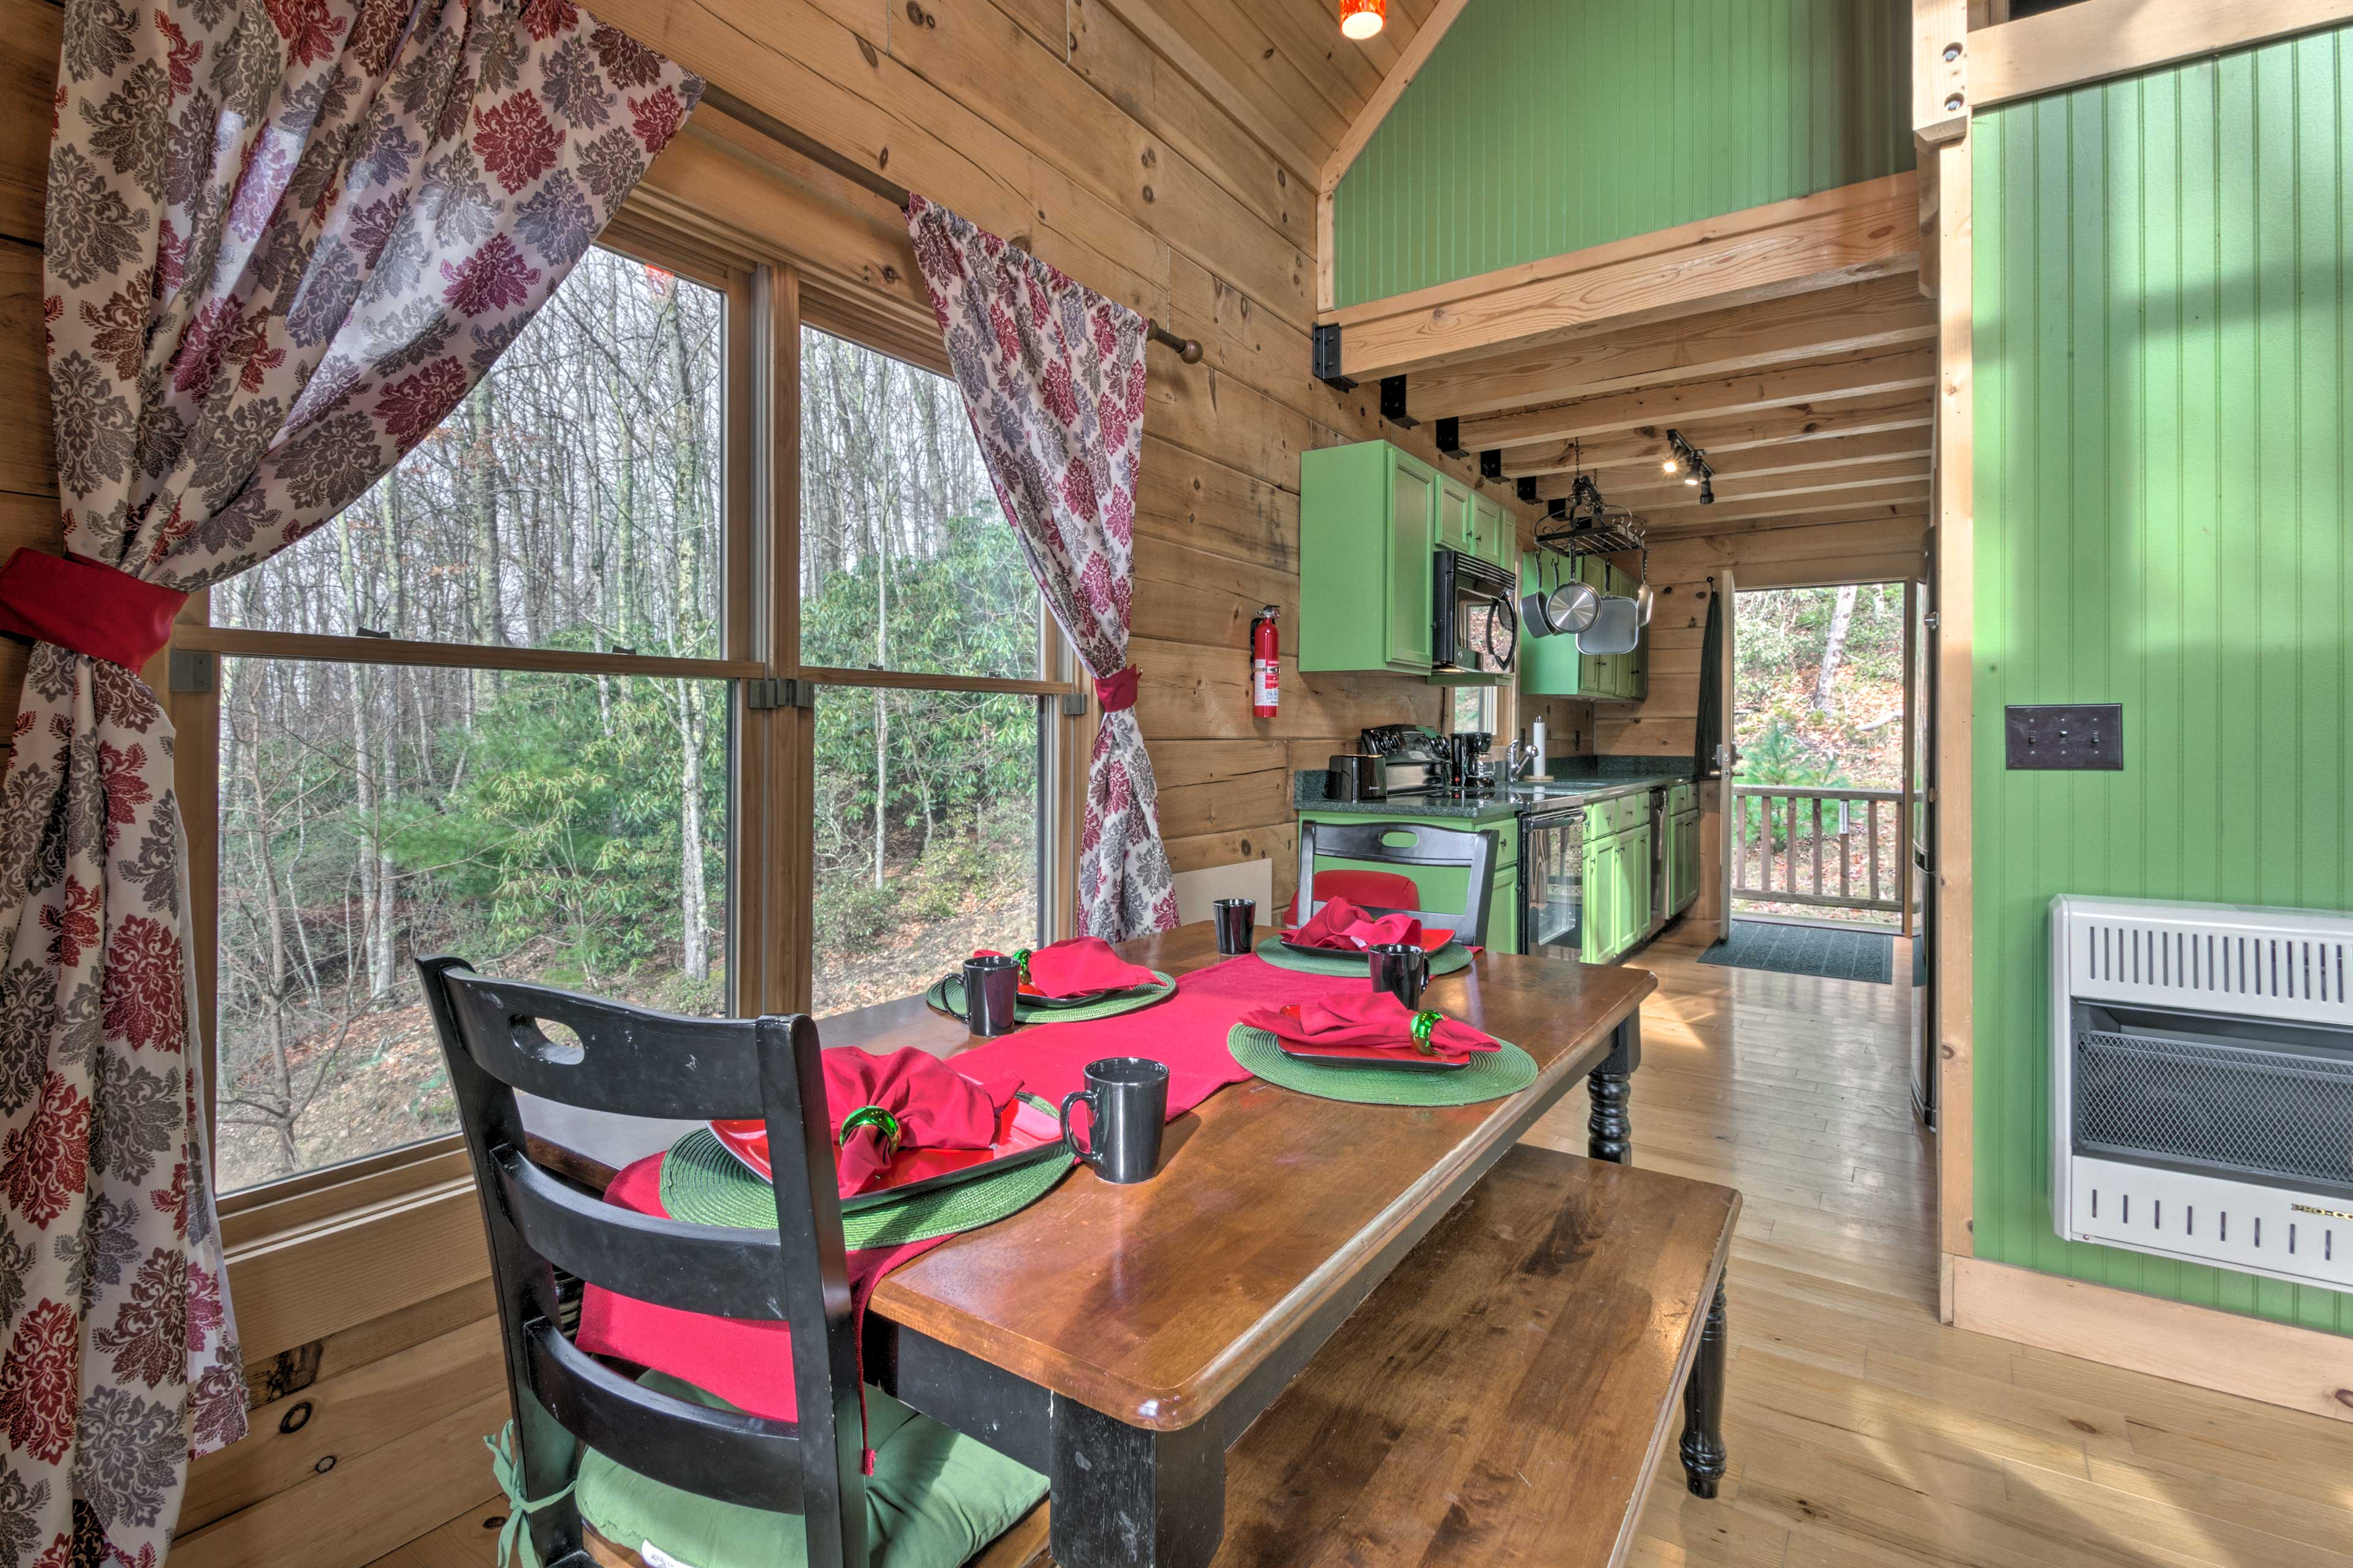 The tranquil setting will elevate your meals!